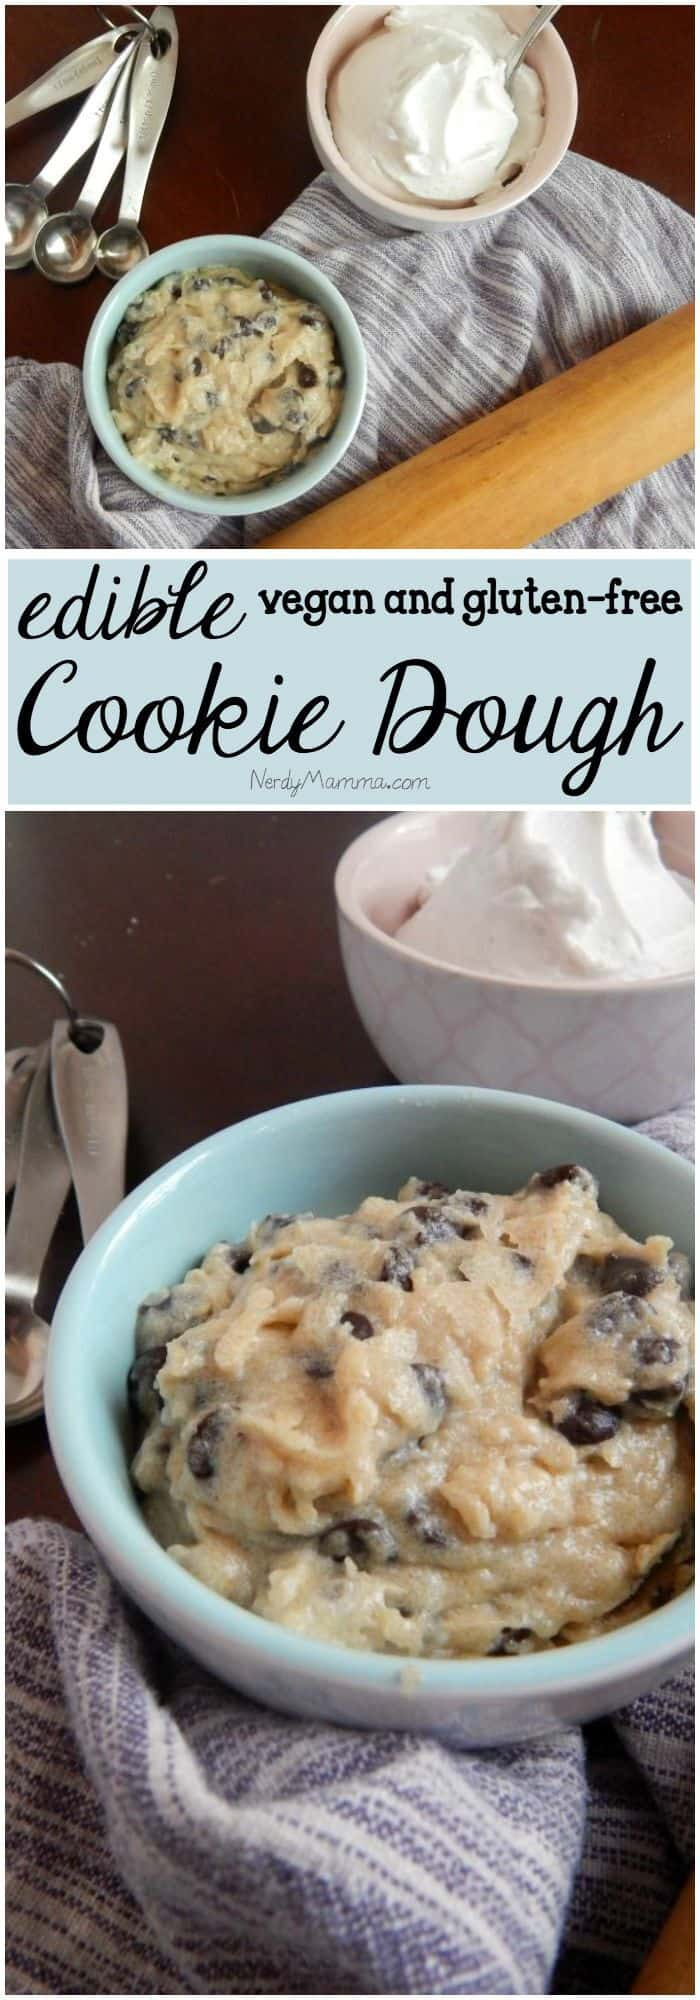 I love this recipe for edible GLUTEN-FREE cookie dough!